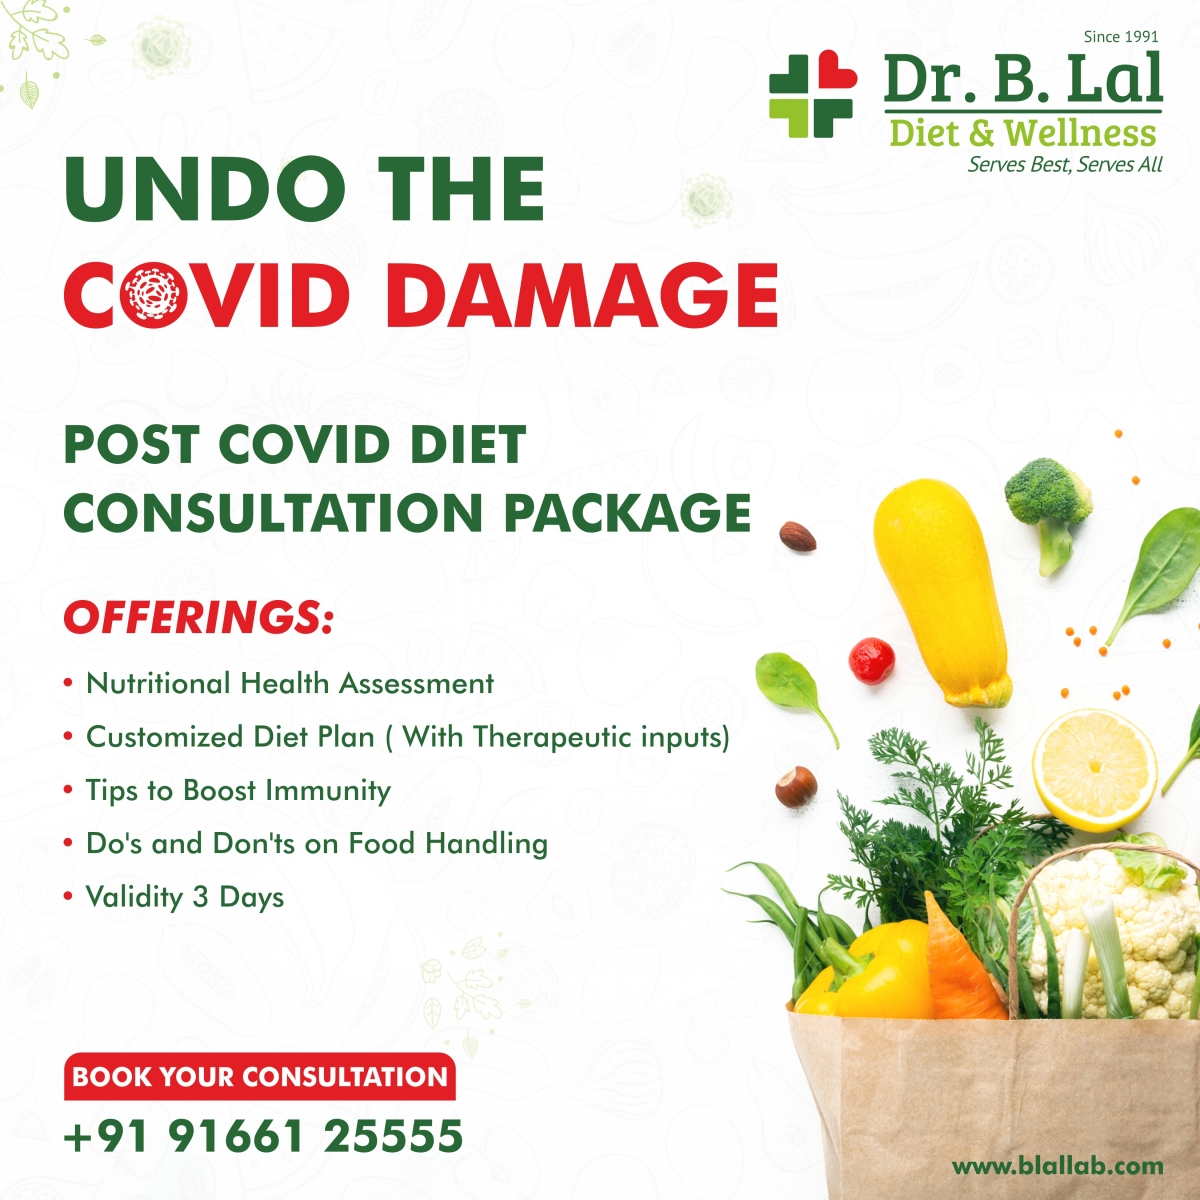 Post Covid Diet Consultation Package